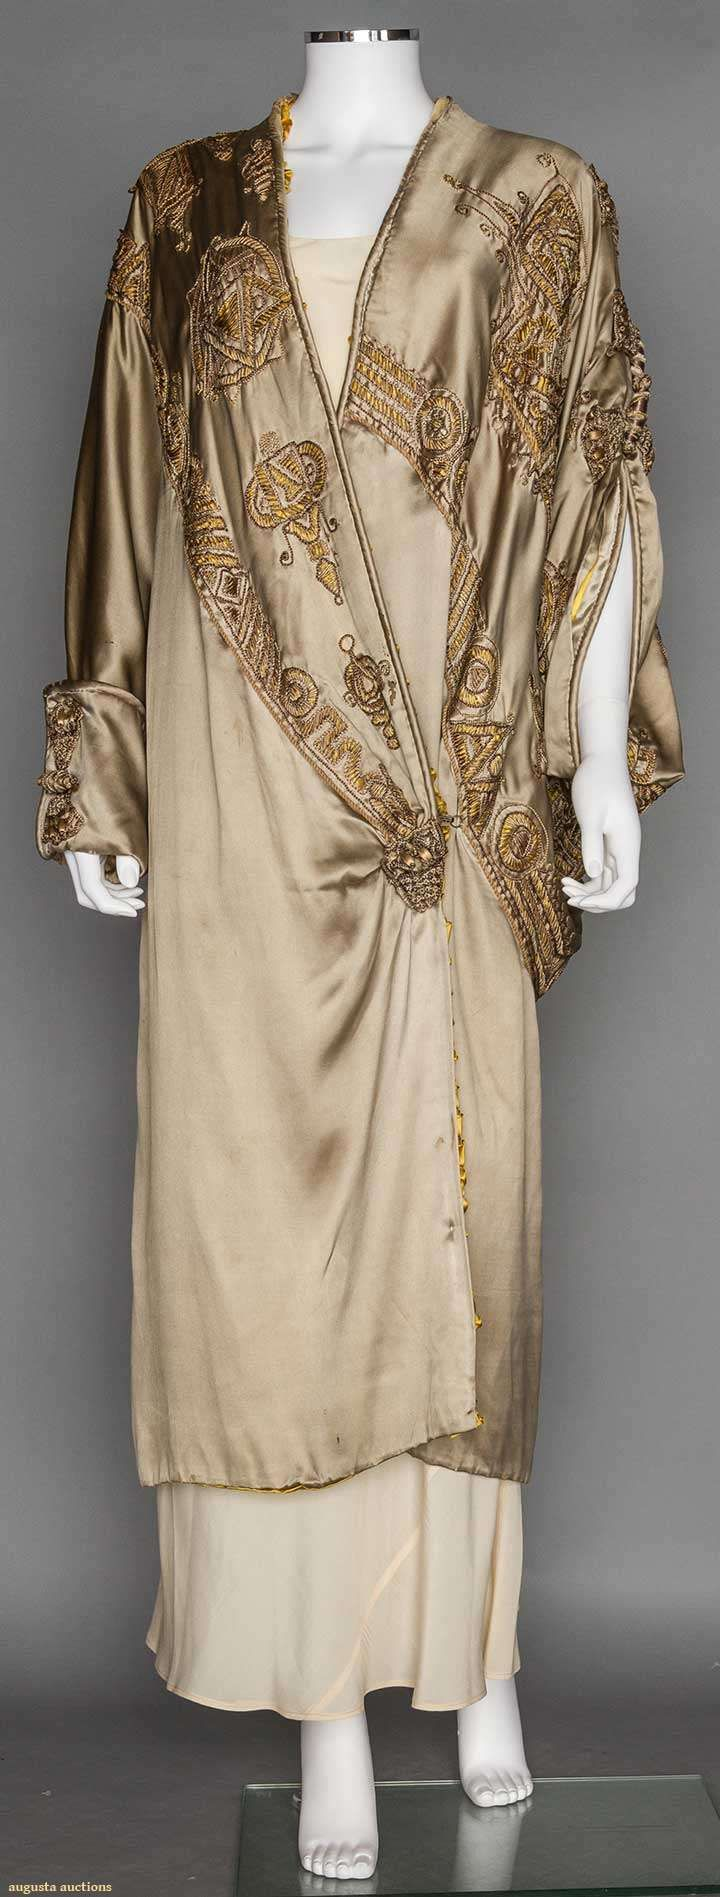 c.1910 - 1920 Avant Garde Opera Coat. Can you imagine this beautifully embroidered coat being called Avant Garde if worn to the theatre today?